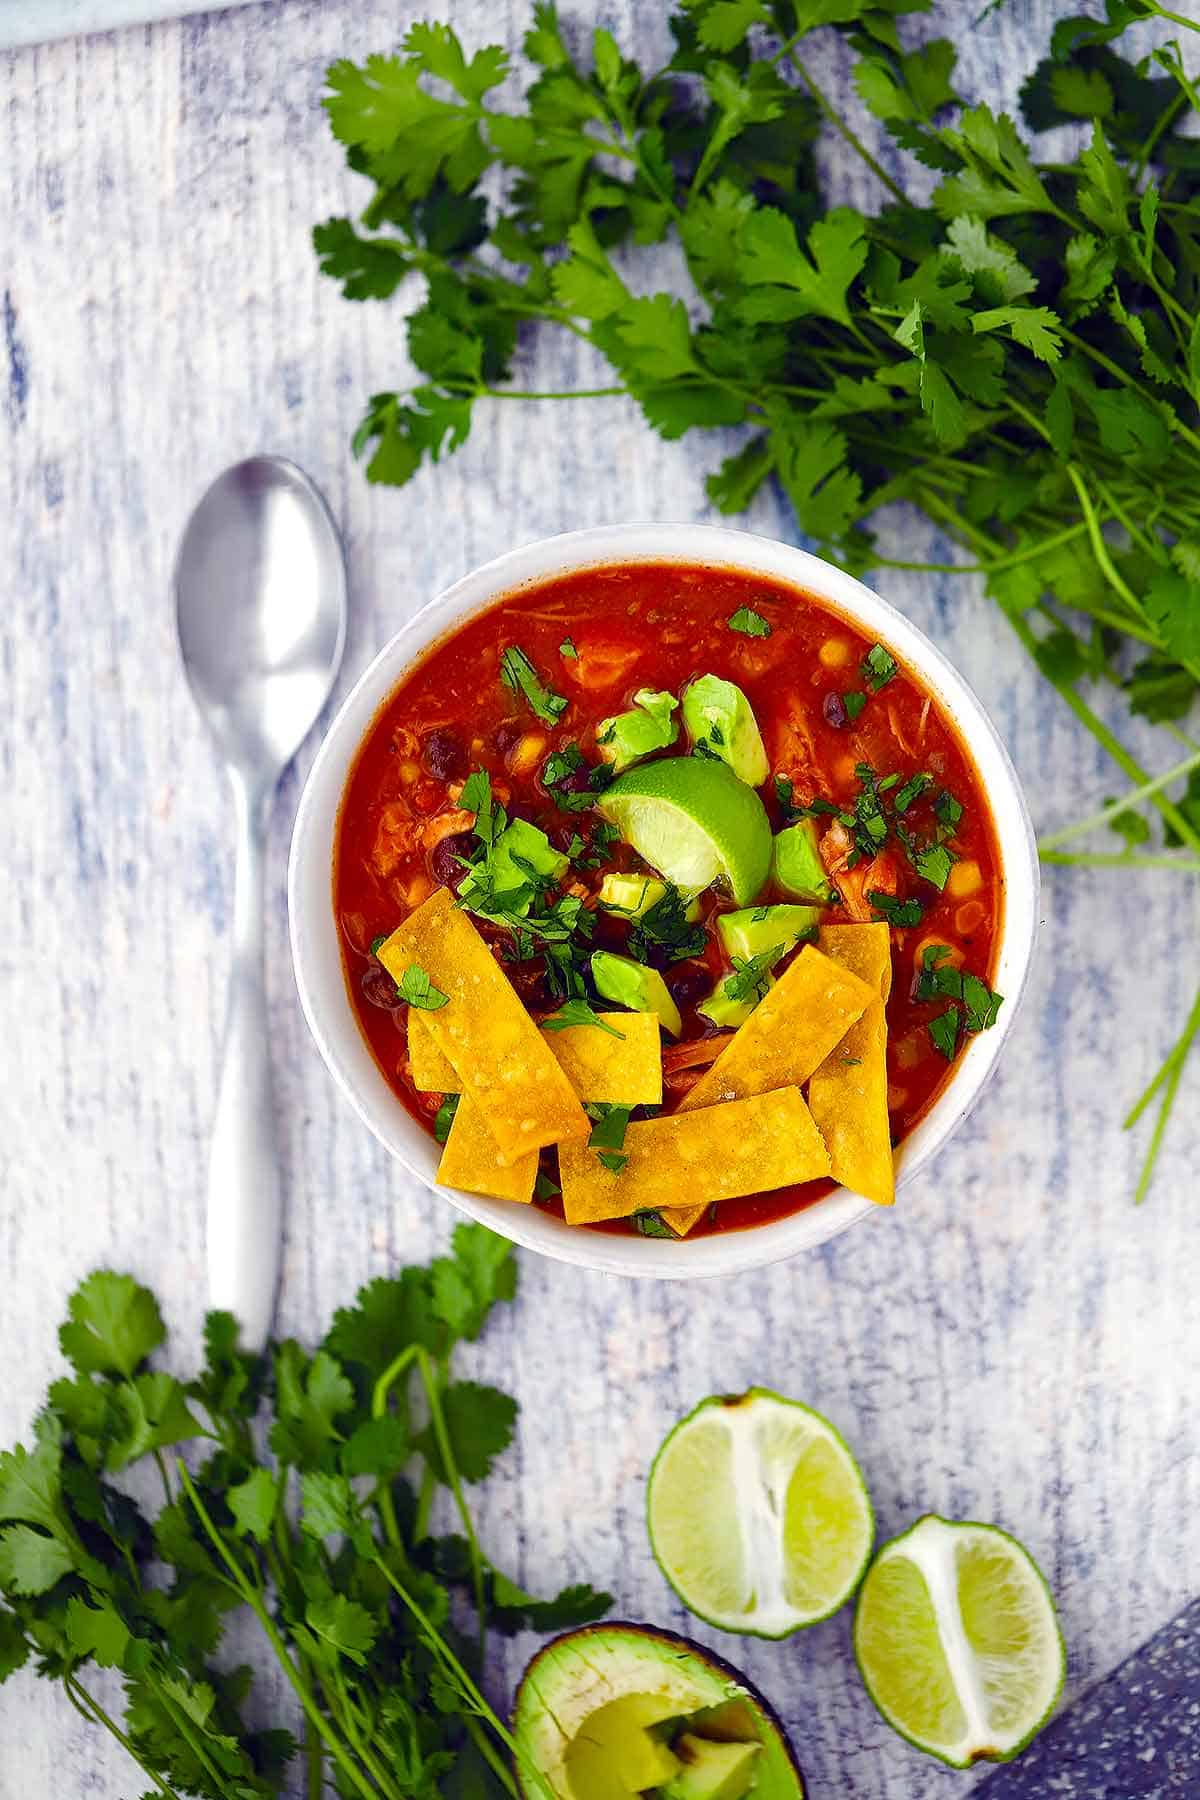 Overhead photo of a bowl of chicken tortilla soup surrounded by cilantro and limes.